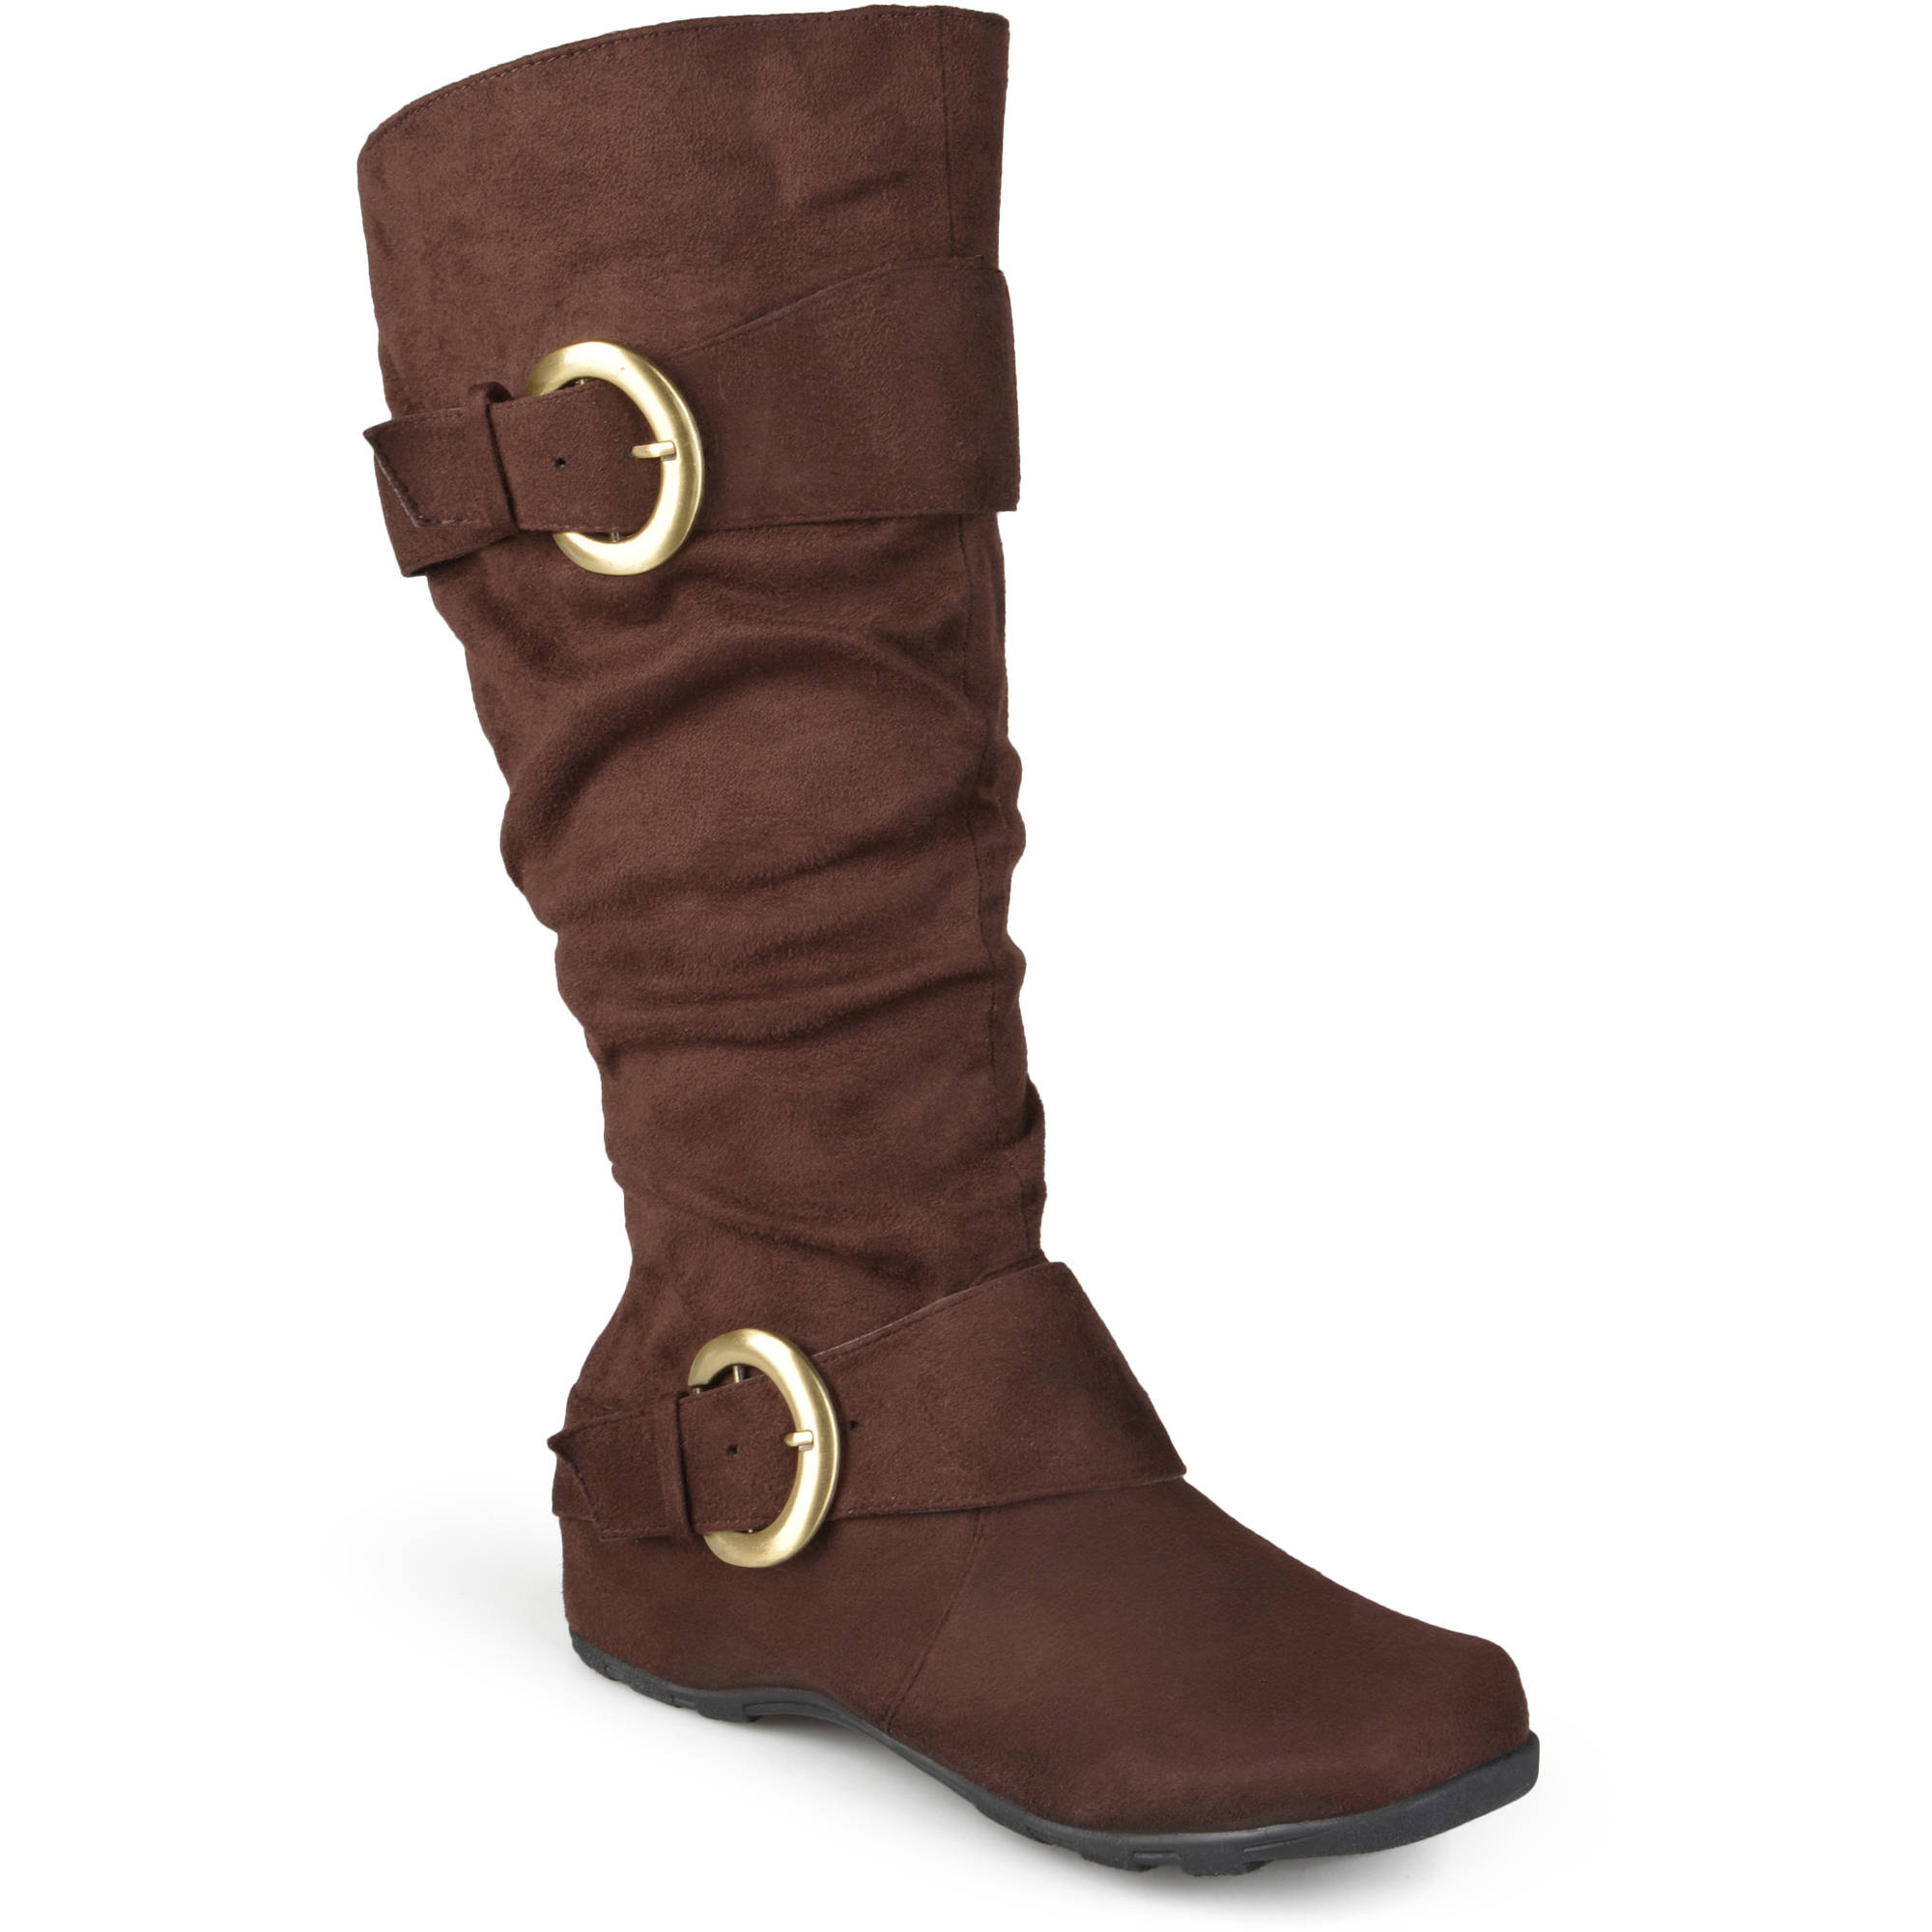 Image of Brinley Co. Women's Extra Wide Calf Mid-Calf Slouch Riding Boots